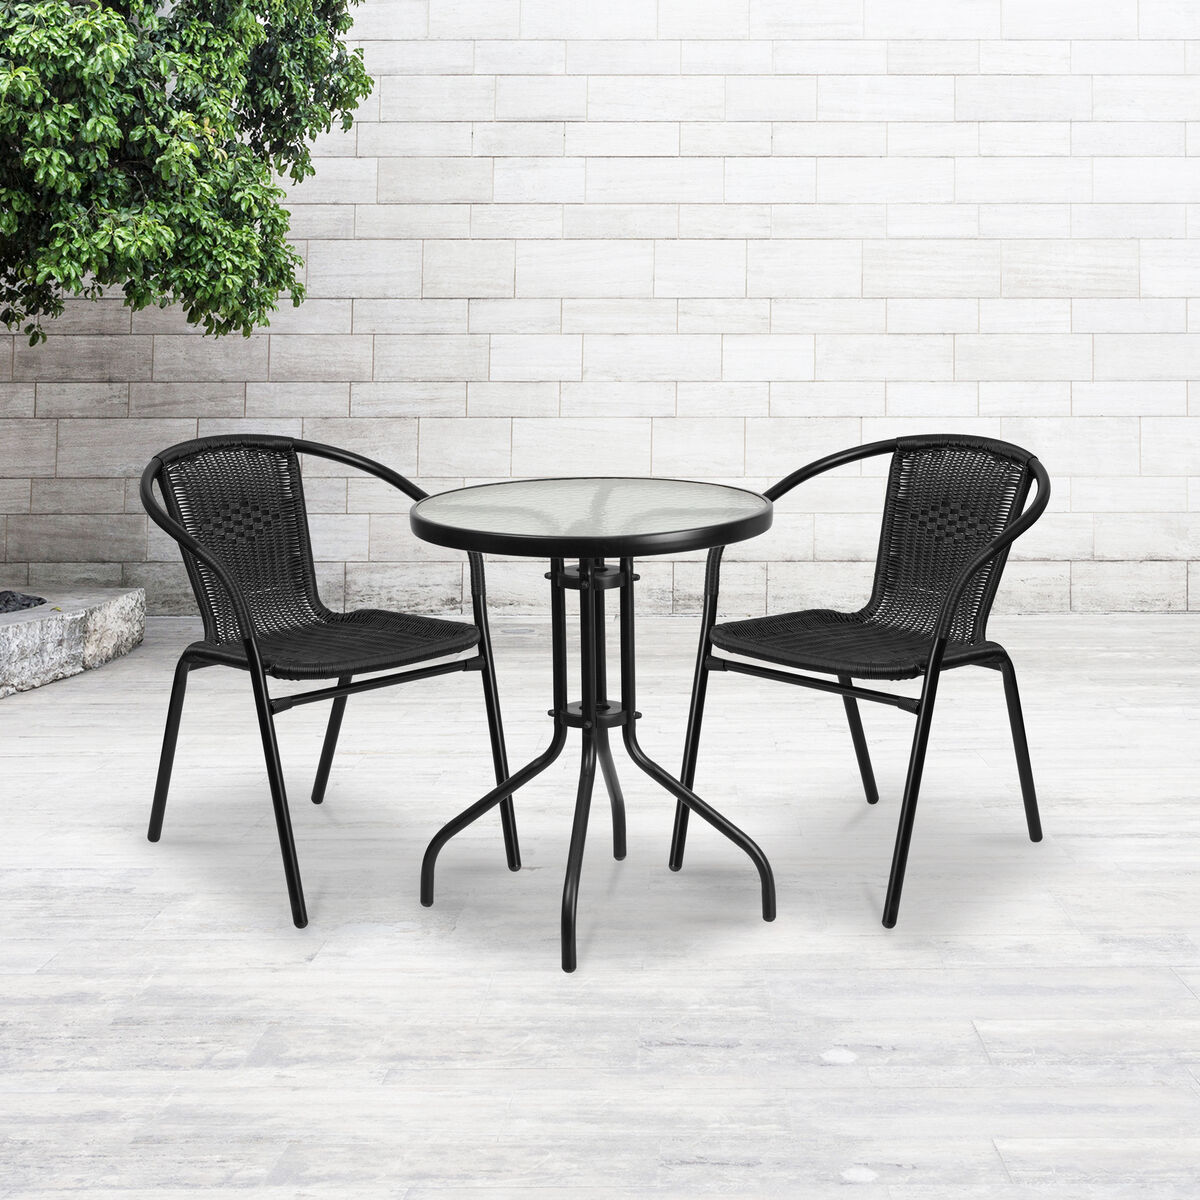 Black Rattan Stack Chair Tlh 037 Bk Gg